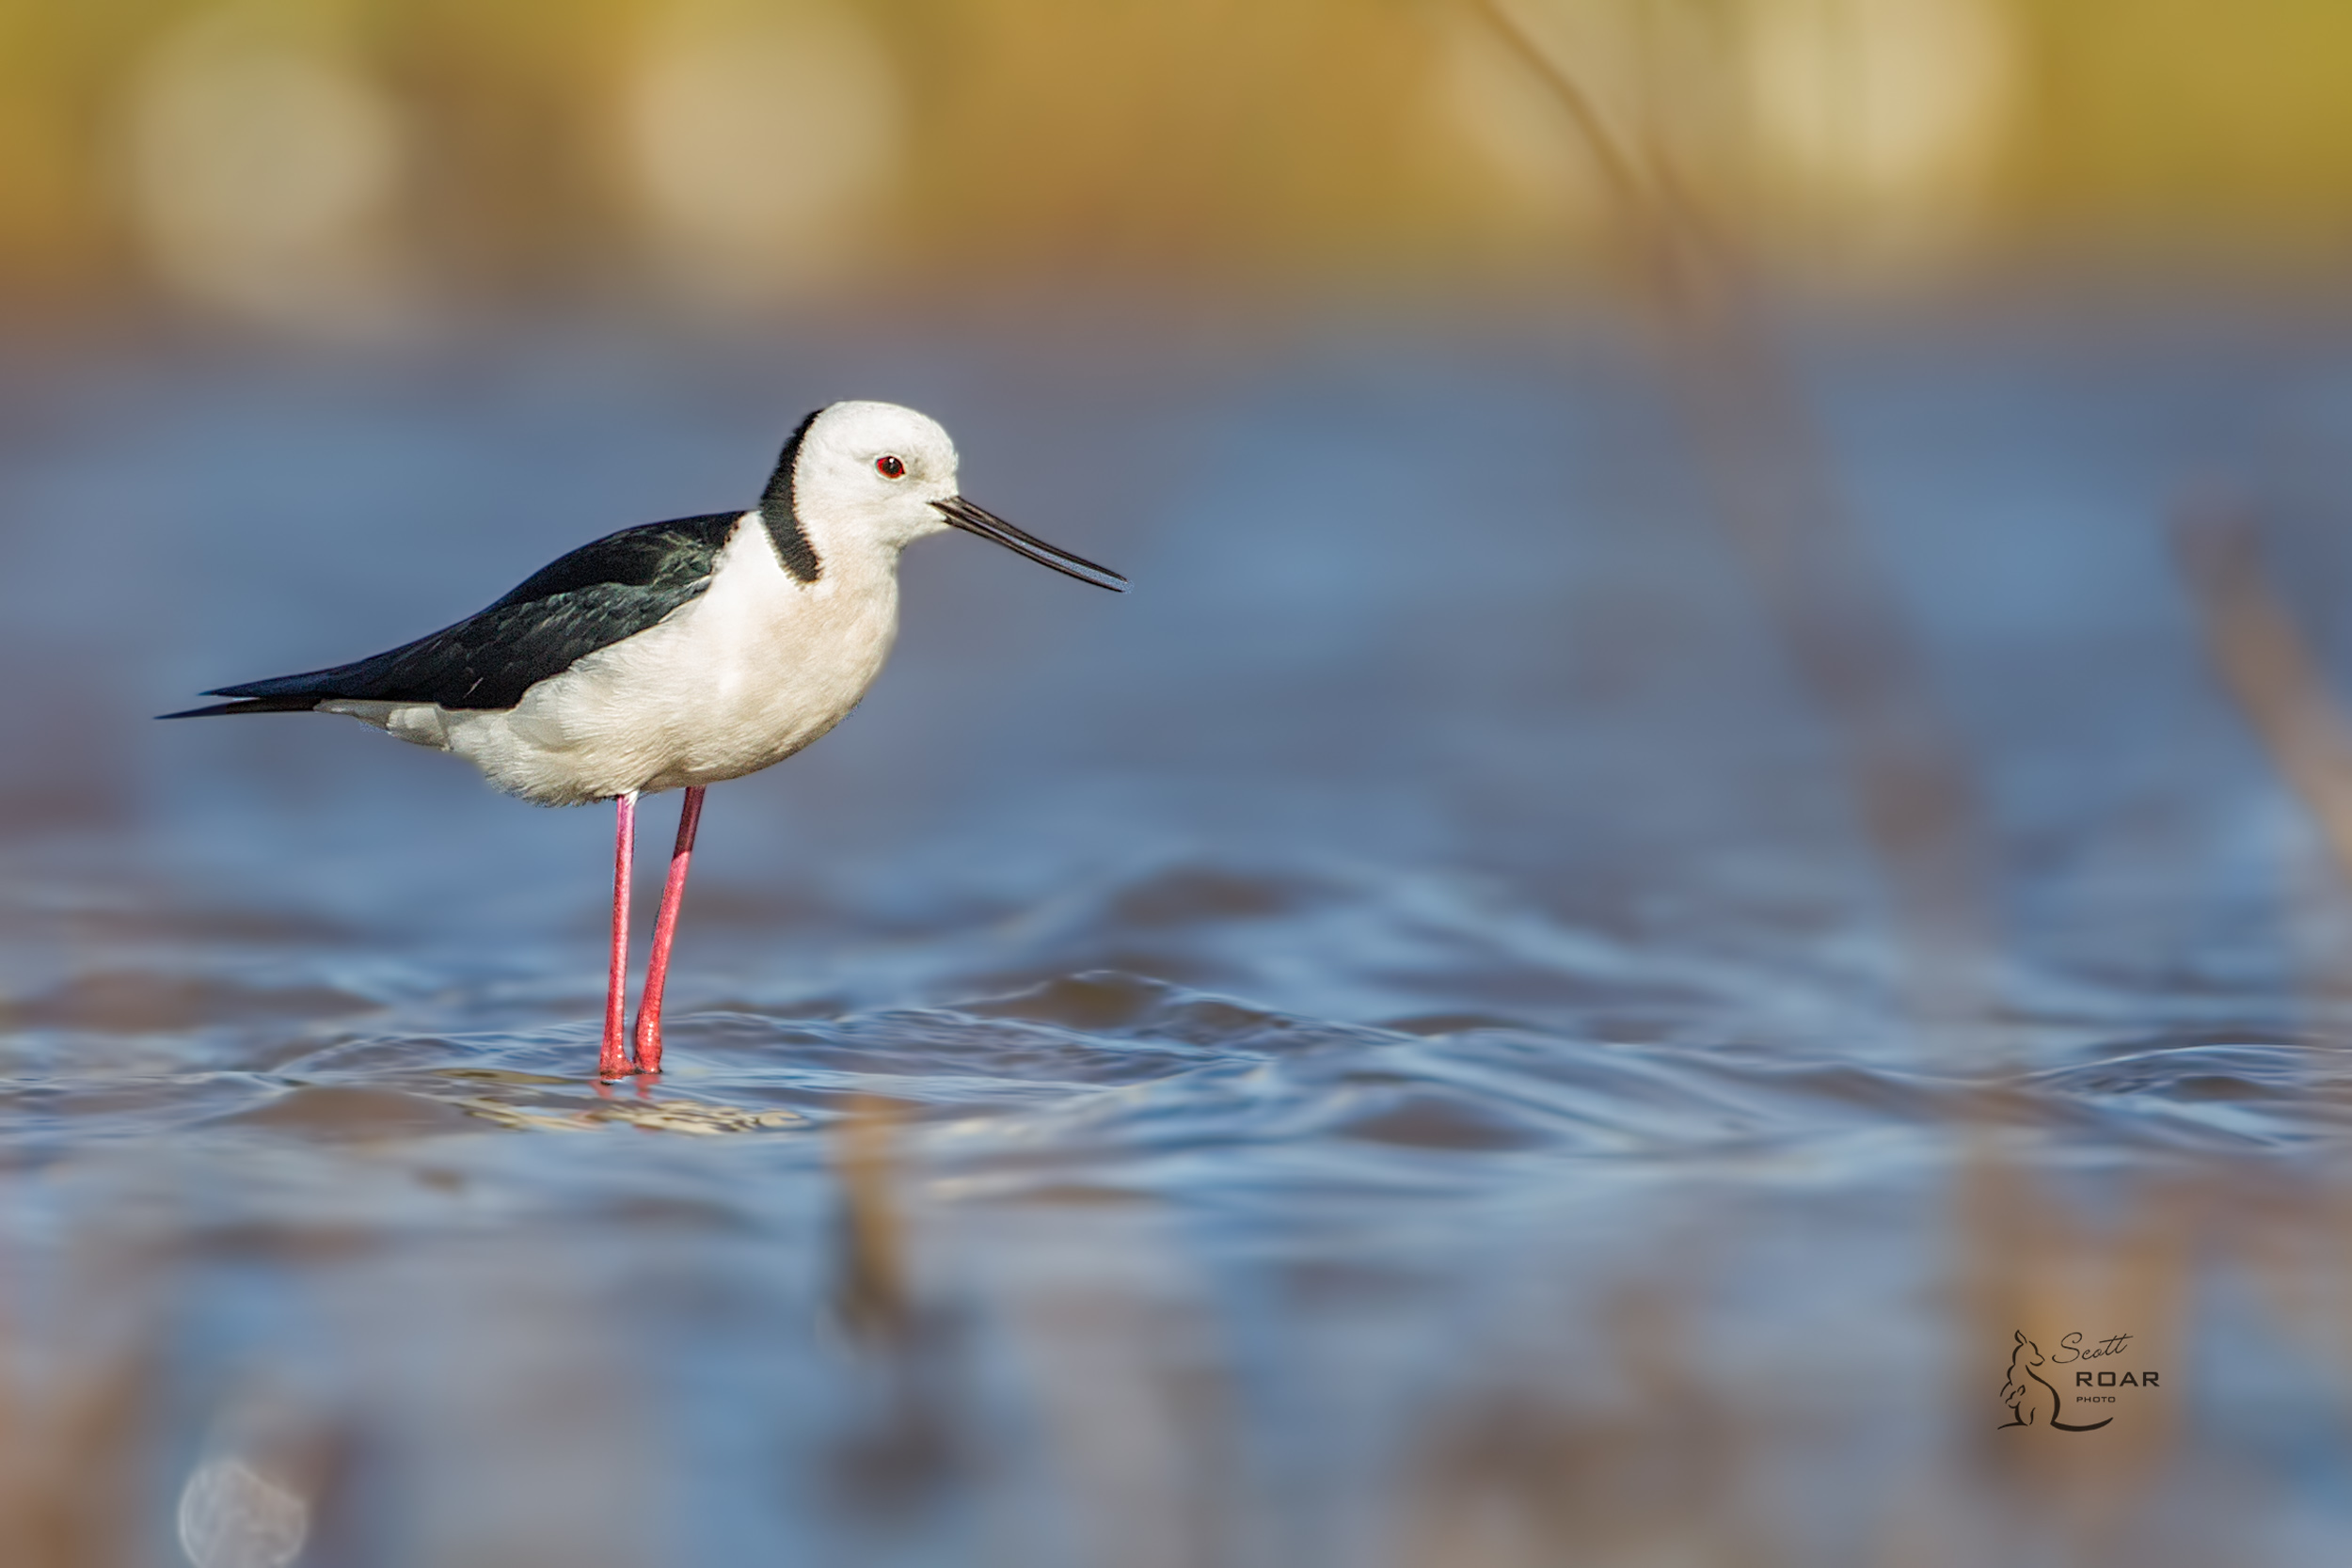 A Black-winged Stilt  found at Narrabri Lake.